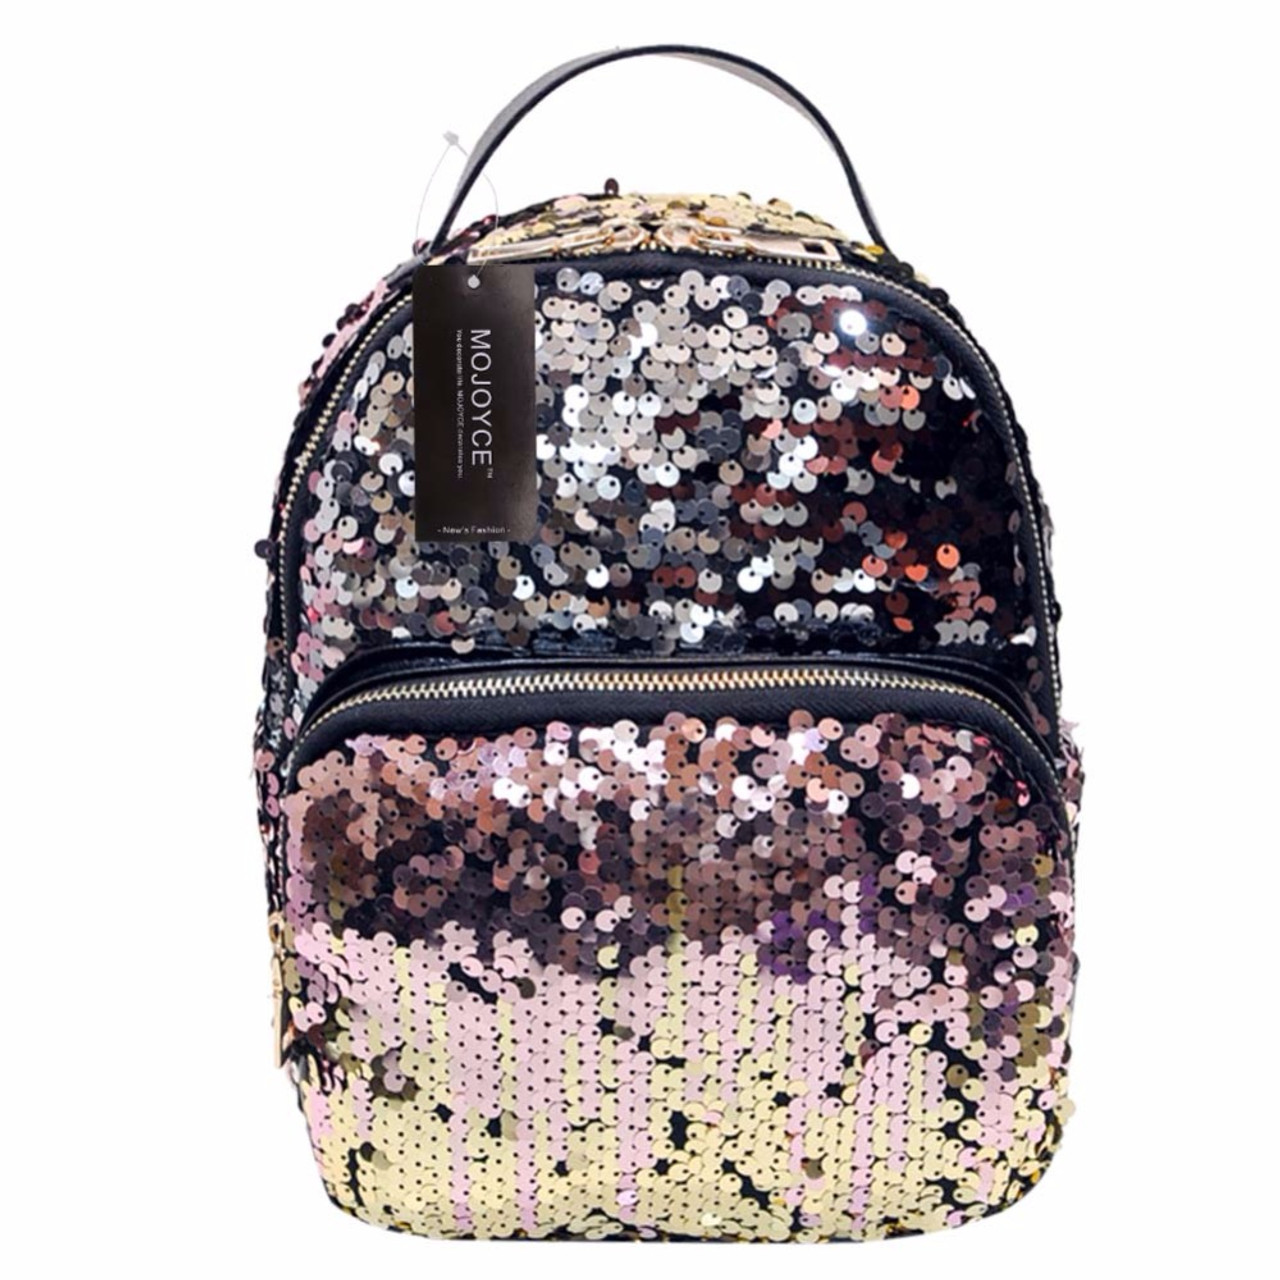 371a51bfd1 MOJOYCE New Arrival Women All-match Bag PU Leather Sequins Backpack Girls  Small Travel Princess ...